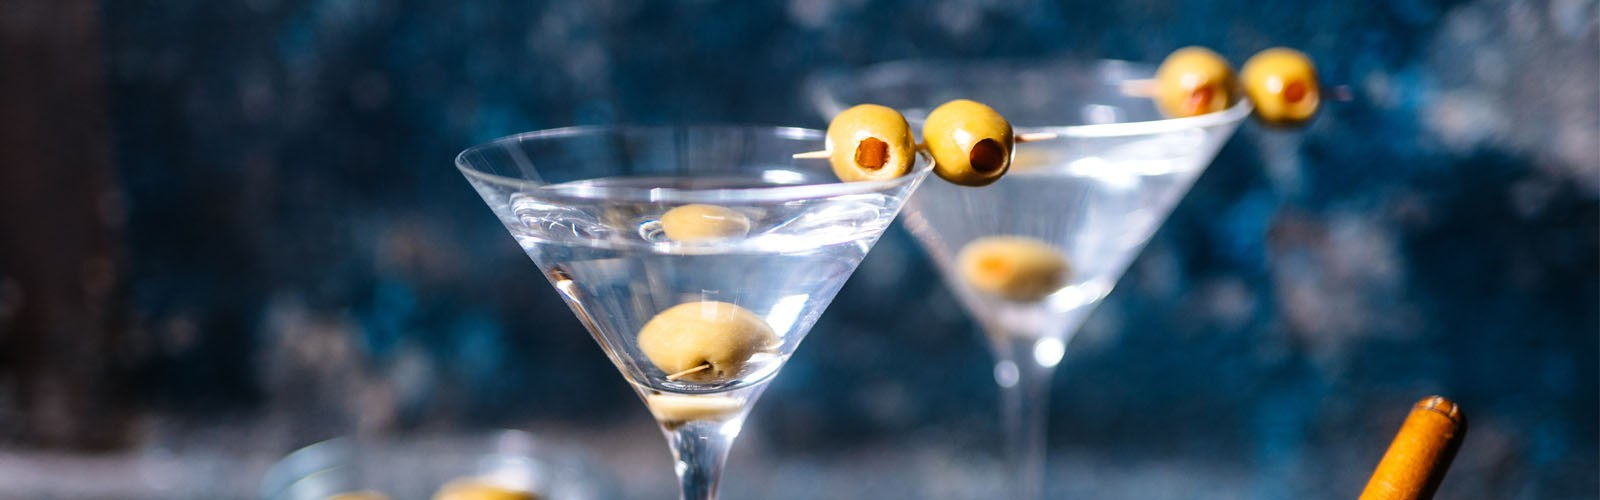 The Ever Popular Gin Martini Cocktail